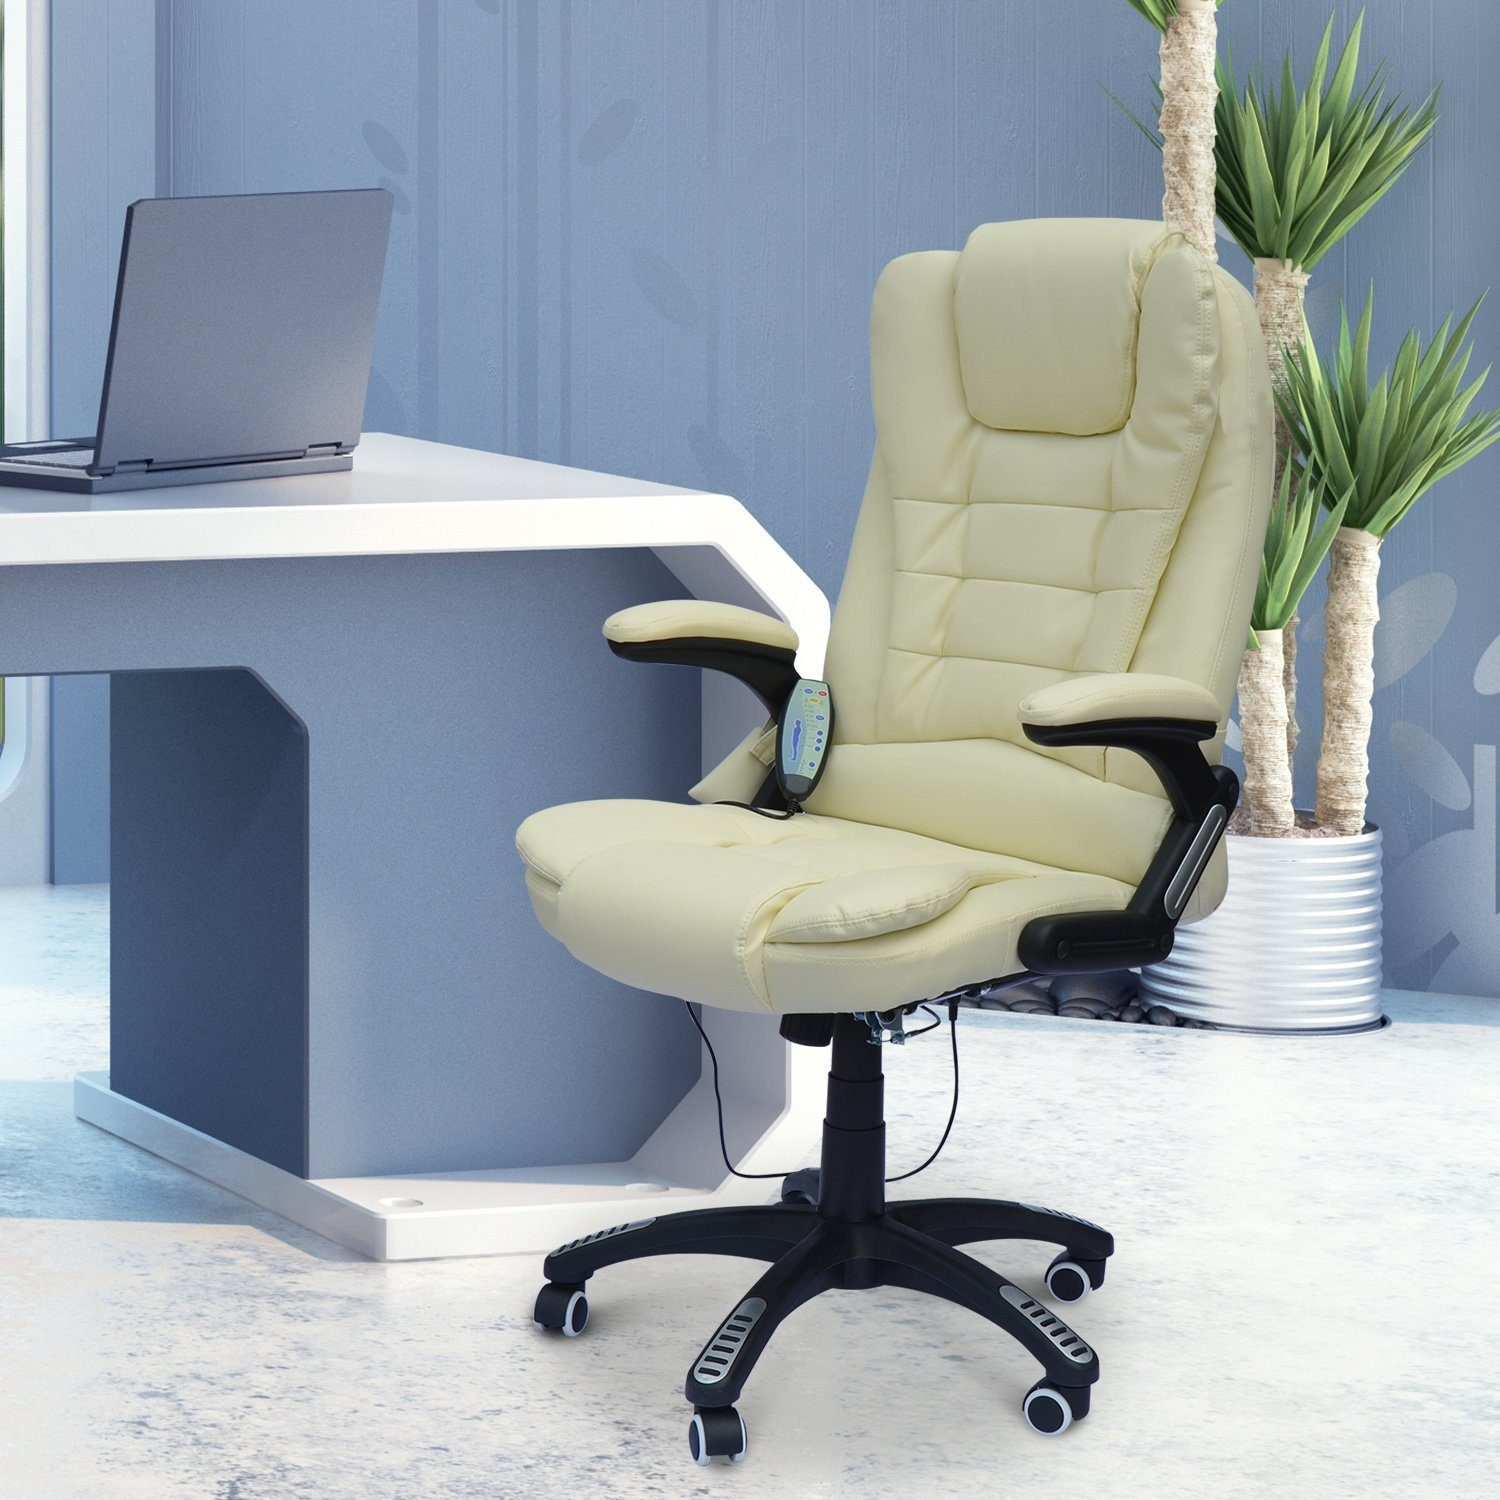 Marvelous 10 Best Ergonomic Massage Office Chairs Get A Massage At Creativecarmelina Interior Chair Design Creativecarmelinacom